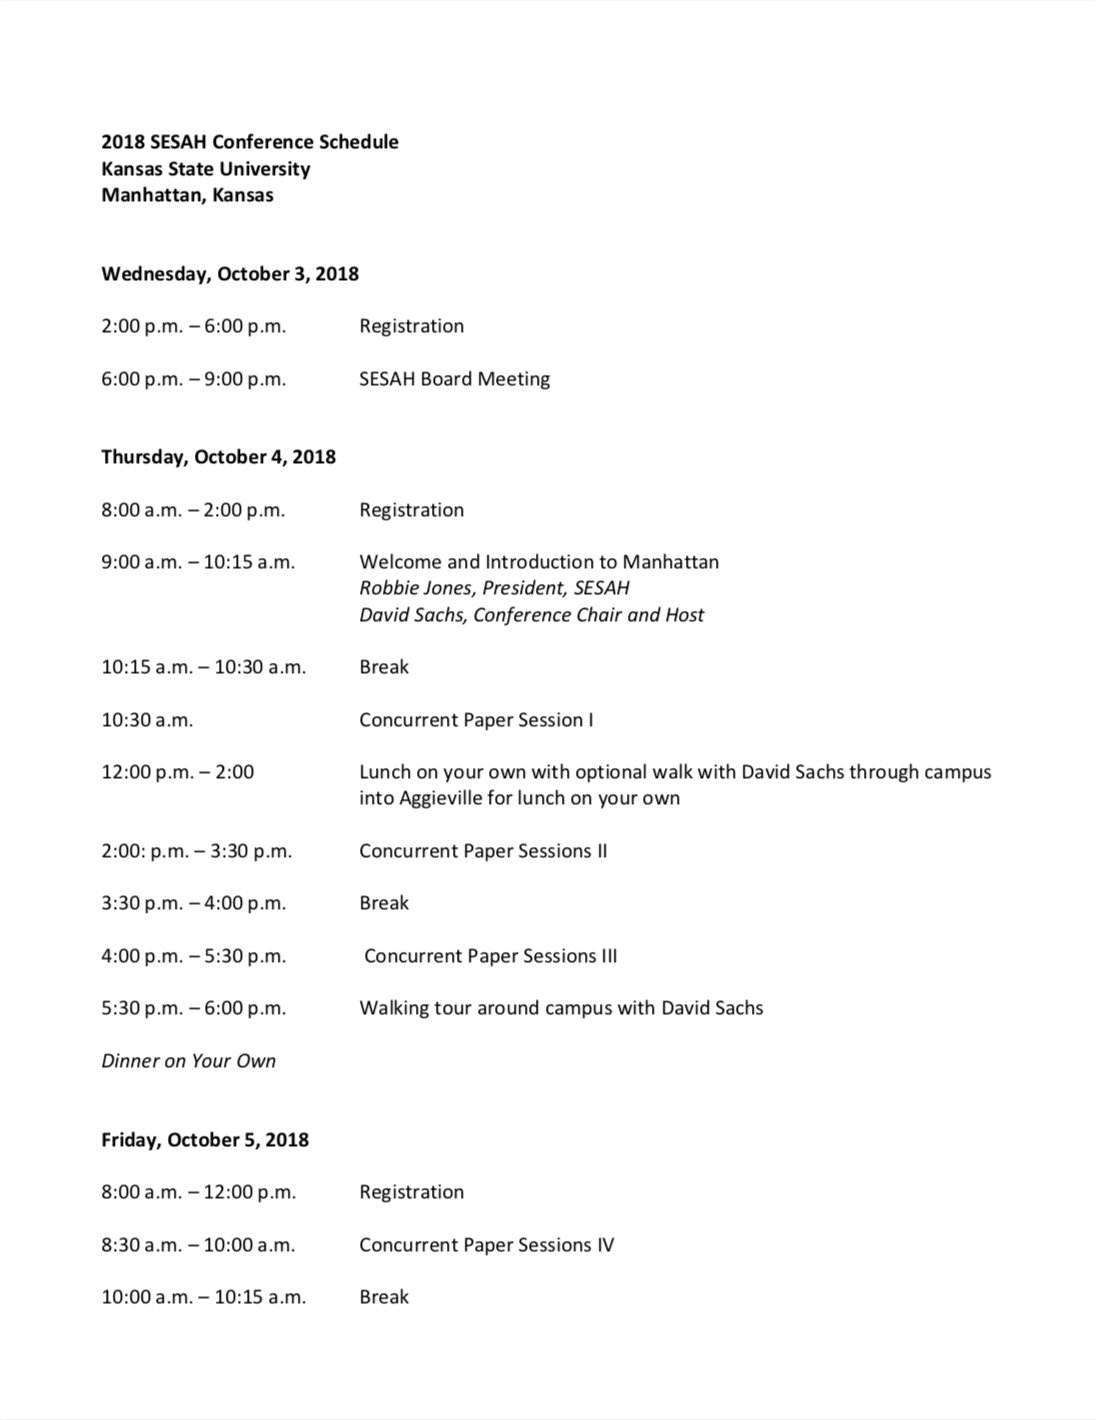 SESAH 2018 Annual Conference Preliminary Schedule